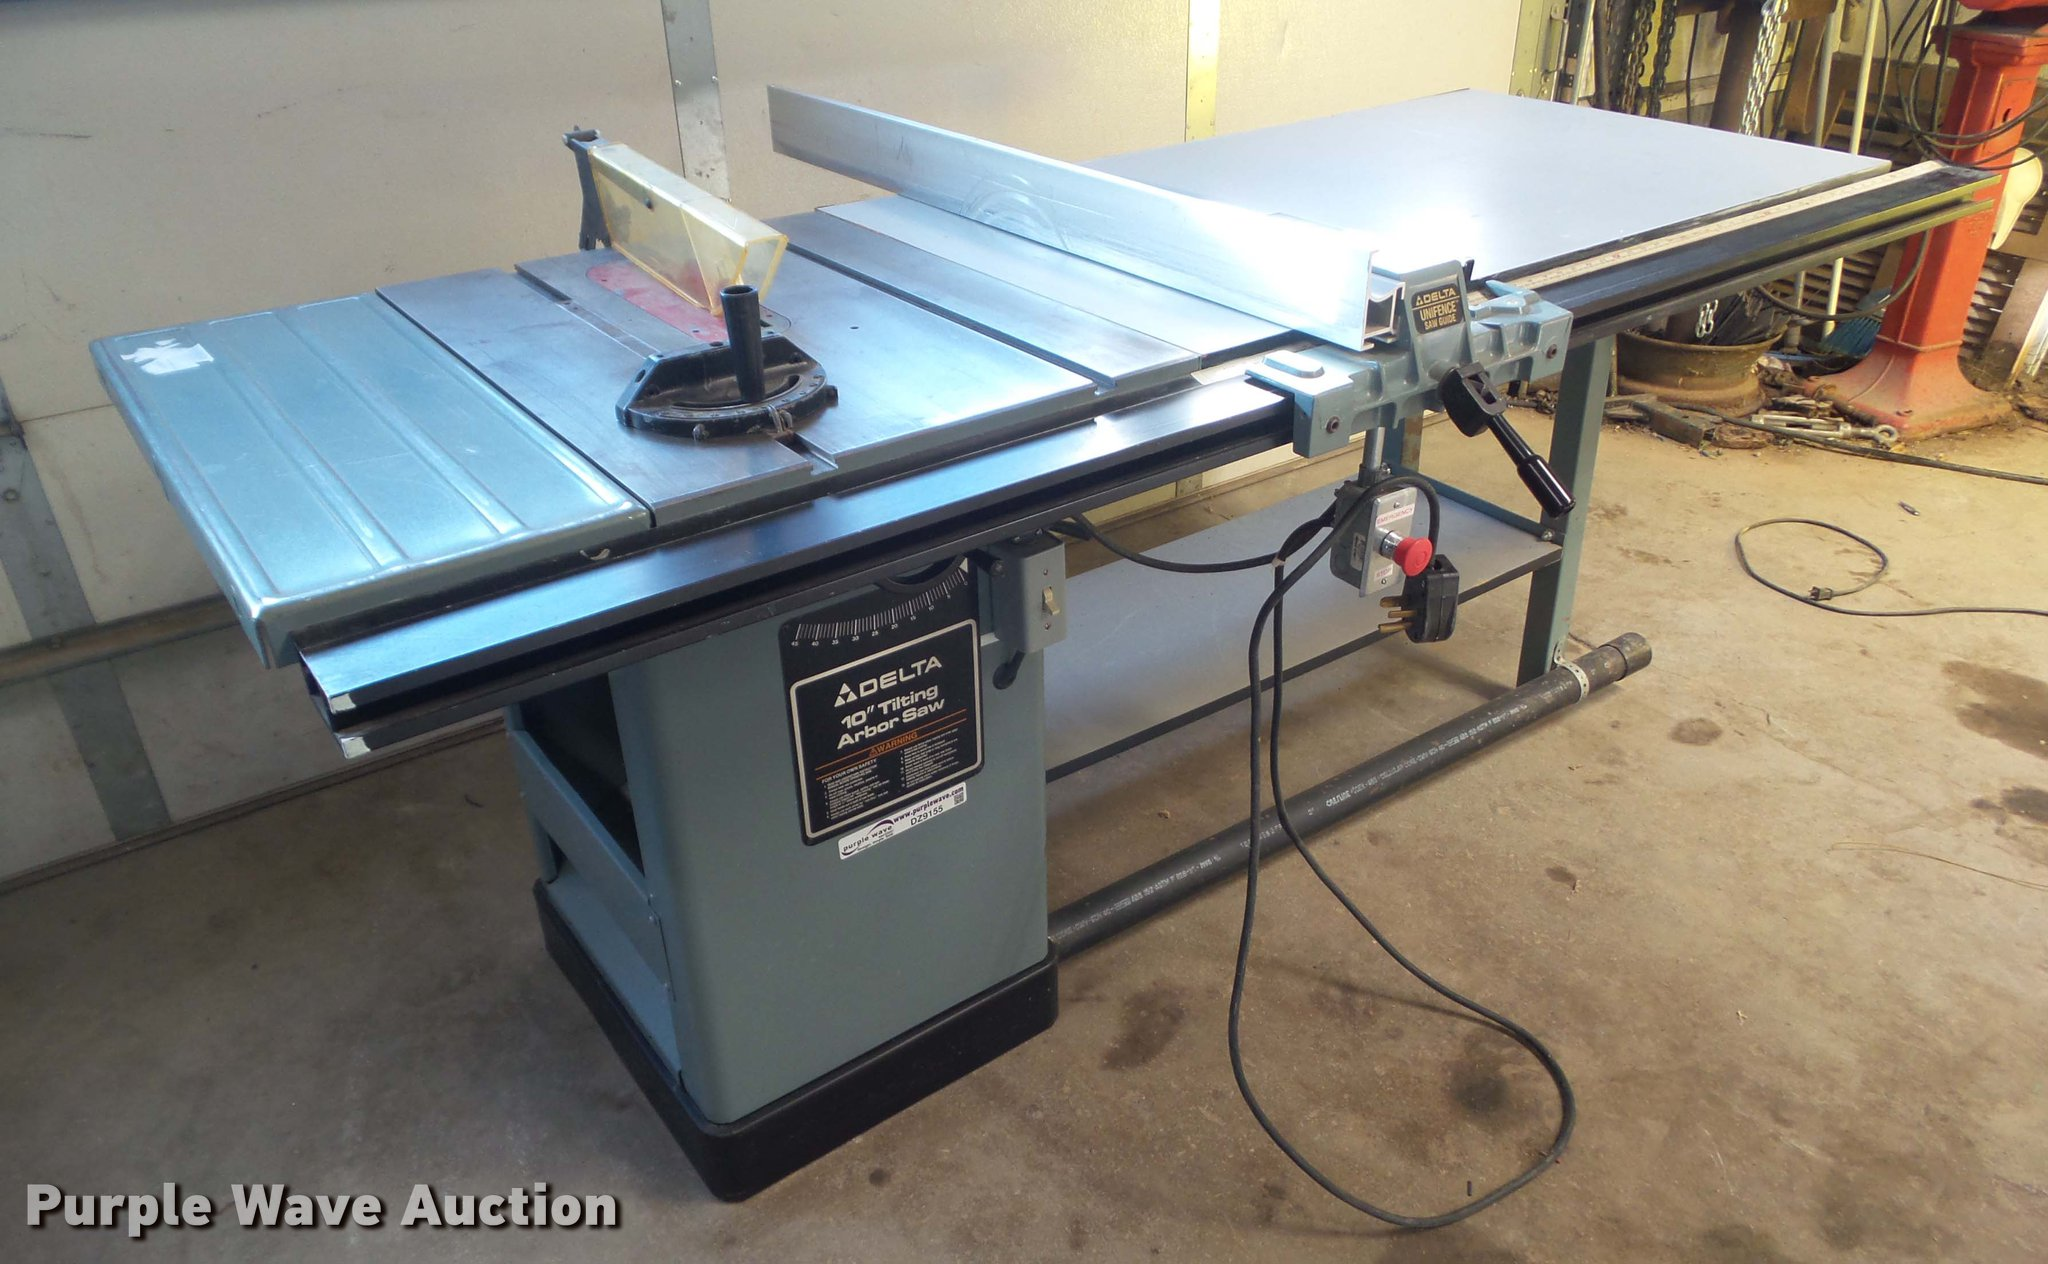 Delta table saw item dz9155 sold january 10 vehicles an dz9155 image for item dz9155 delta table saw greentooth Images